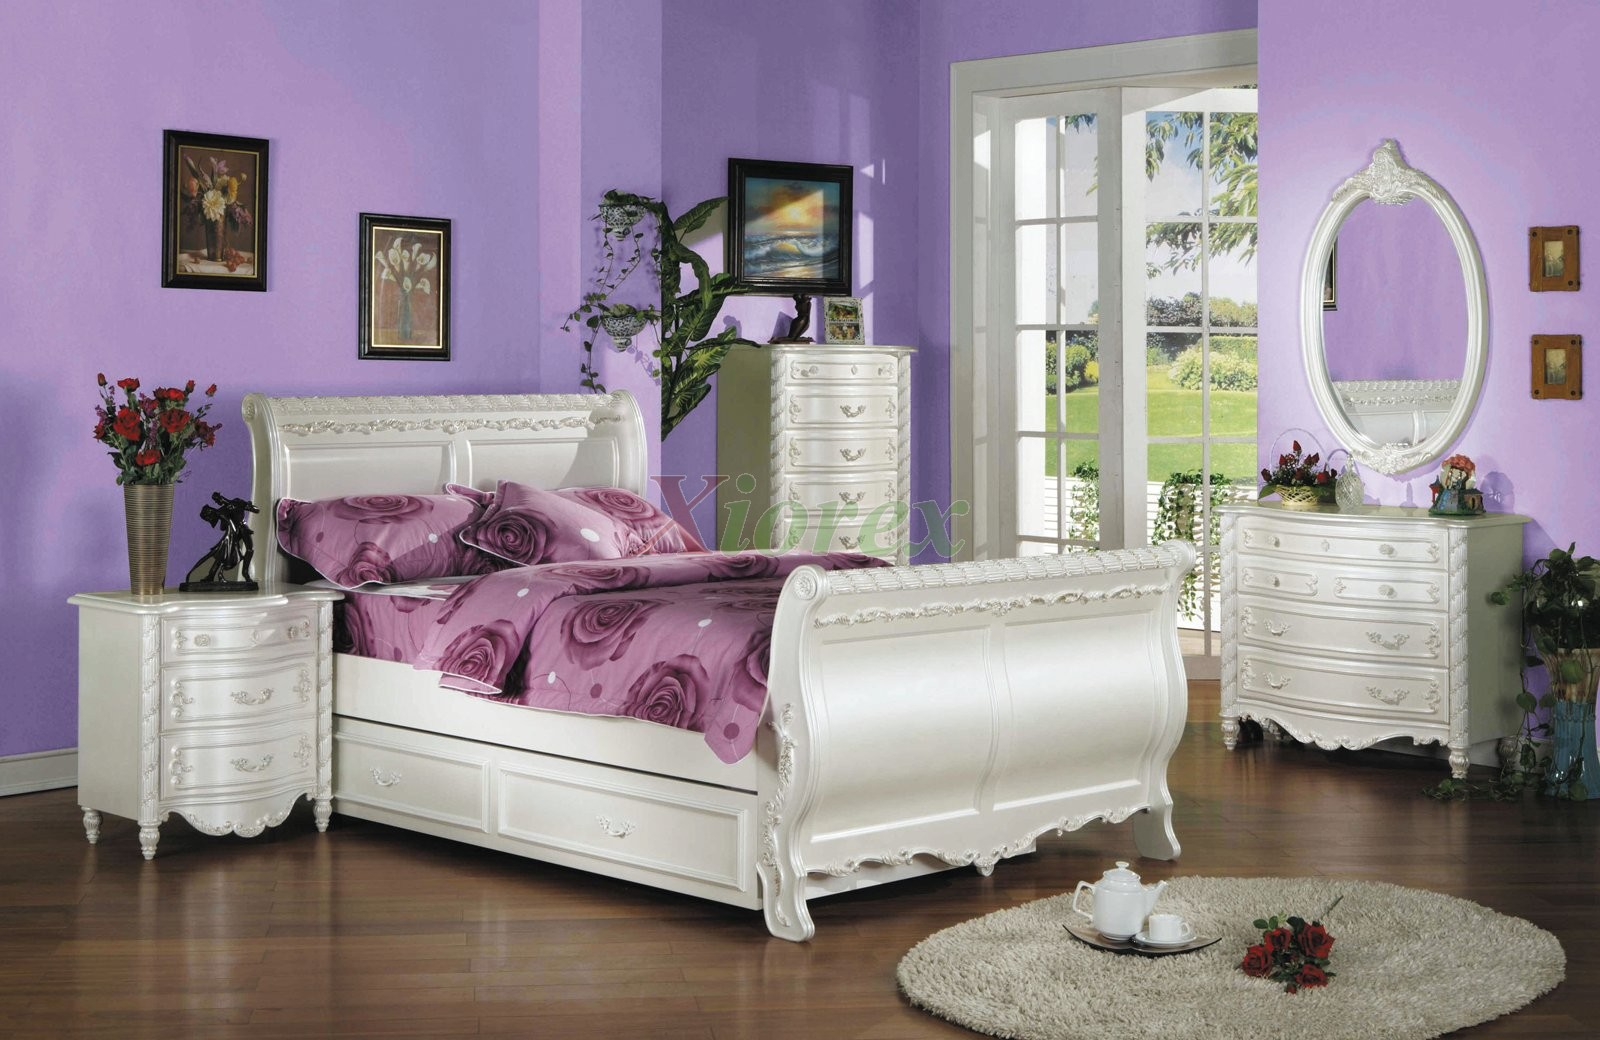 Remarkable White Full Sleigh Bed Bedroom Set 1600 x 1040 · 317 kB · jpeg